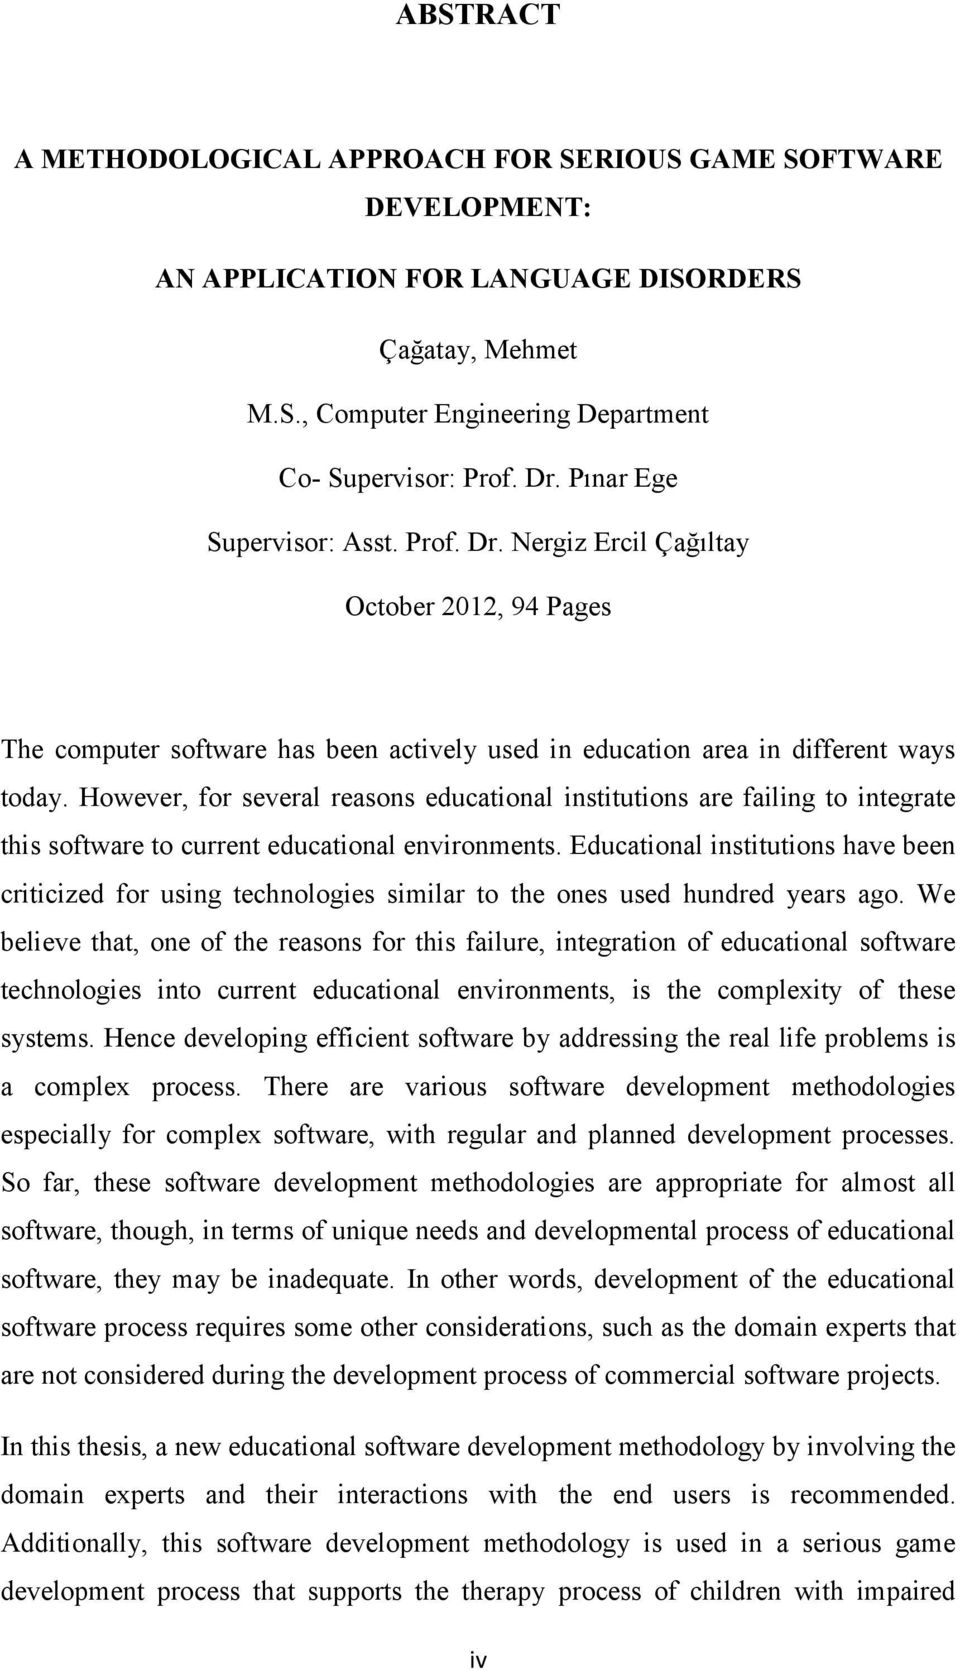 However, for several reasons educational institutions are failing to integrate this software to current educational environments.